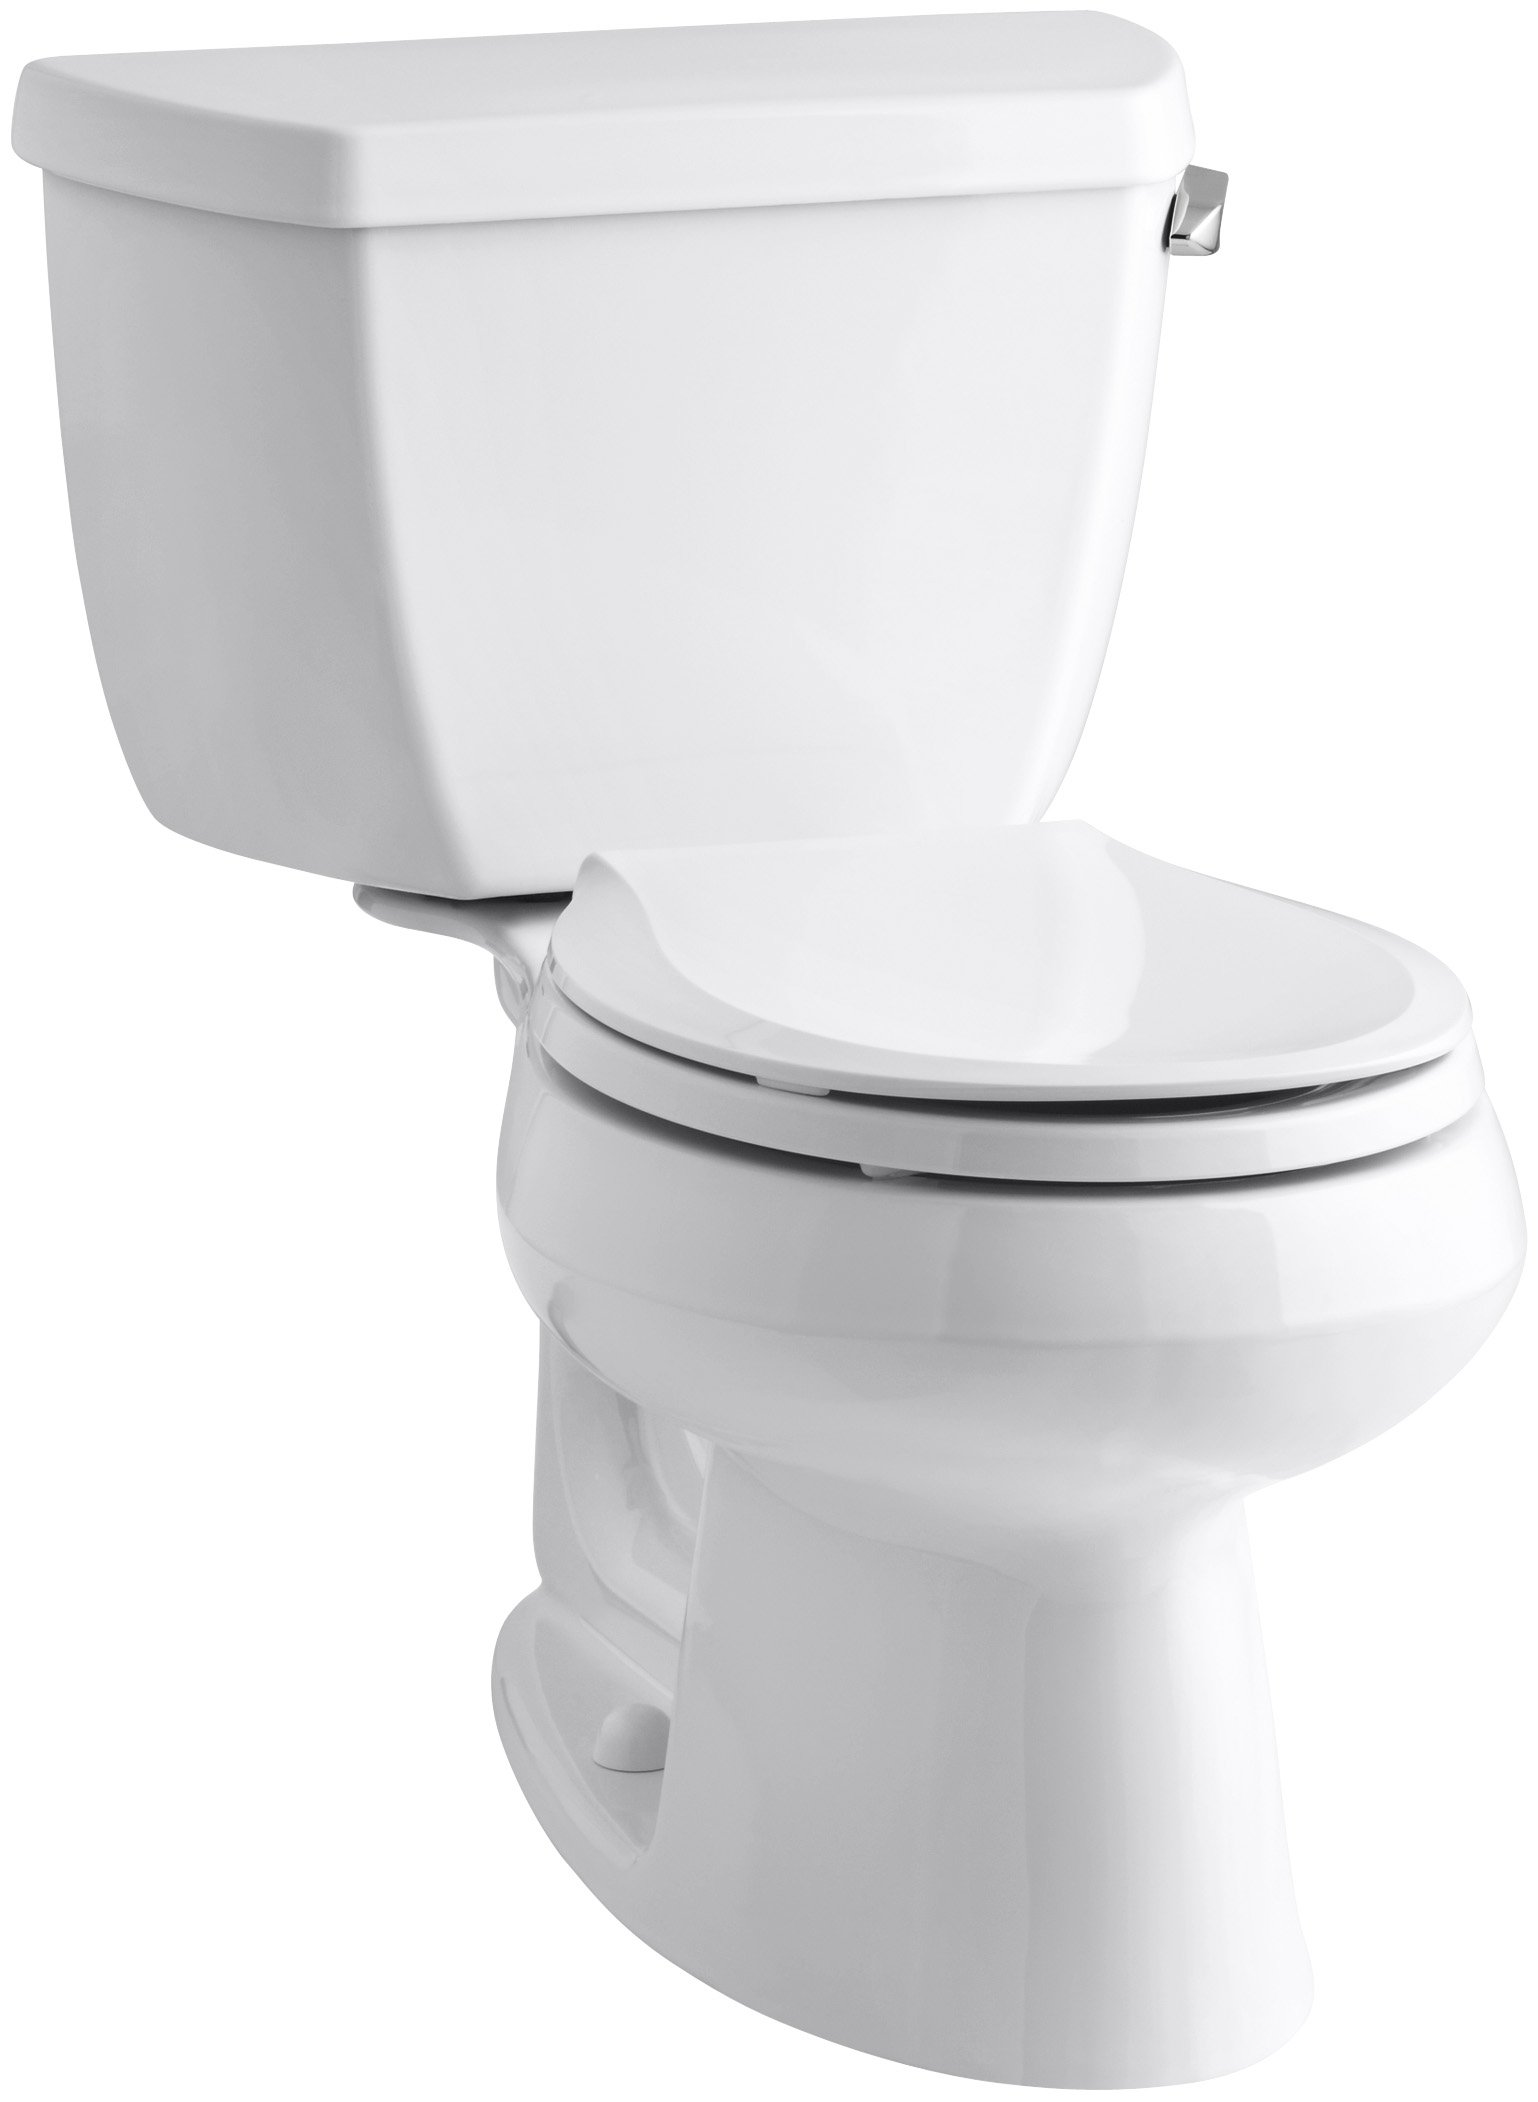 Kohler K-3577-RA-0 Wellworth Classic 1.28gpf Round-Front Toilet with Class Five Flushing Technology and Right-Hand Trip Lever, White, 12 Inch, by Kohler